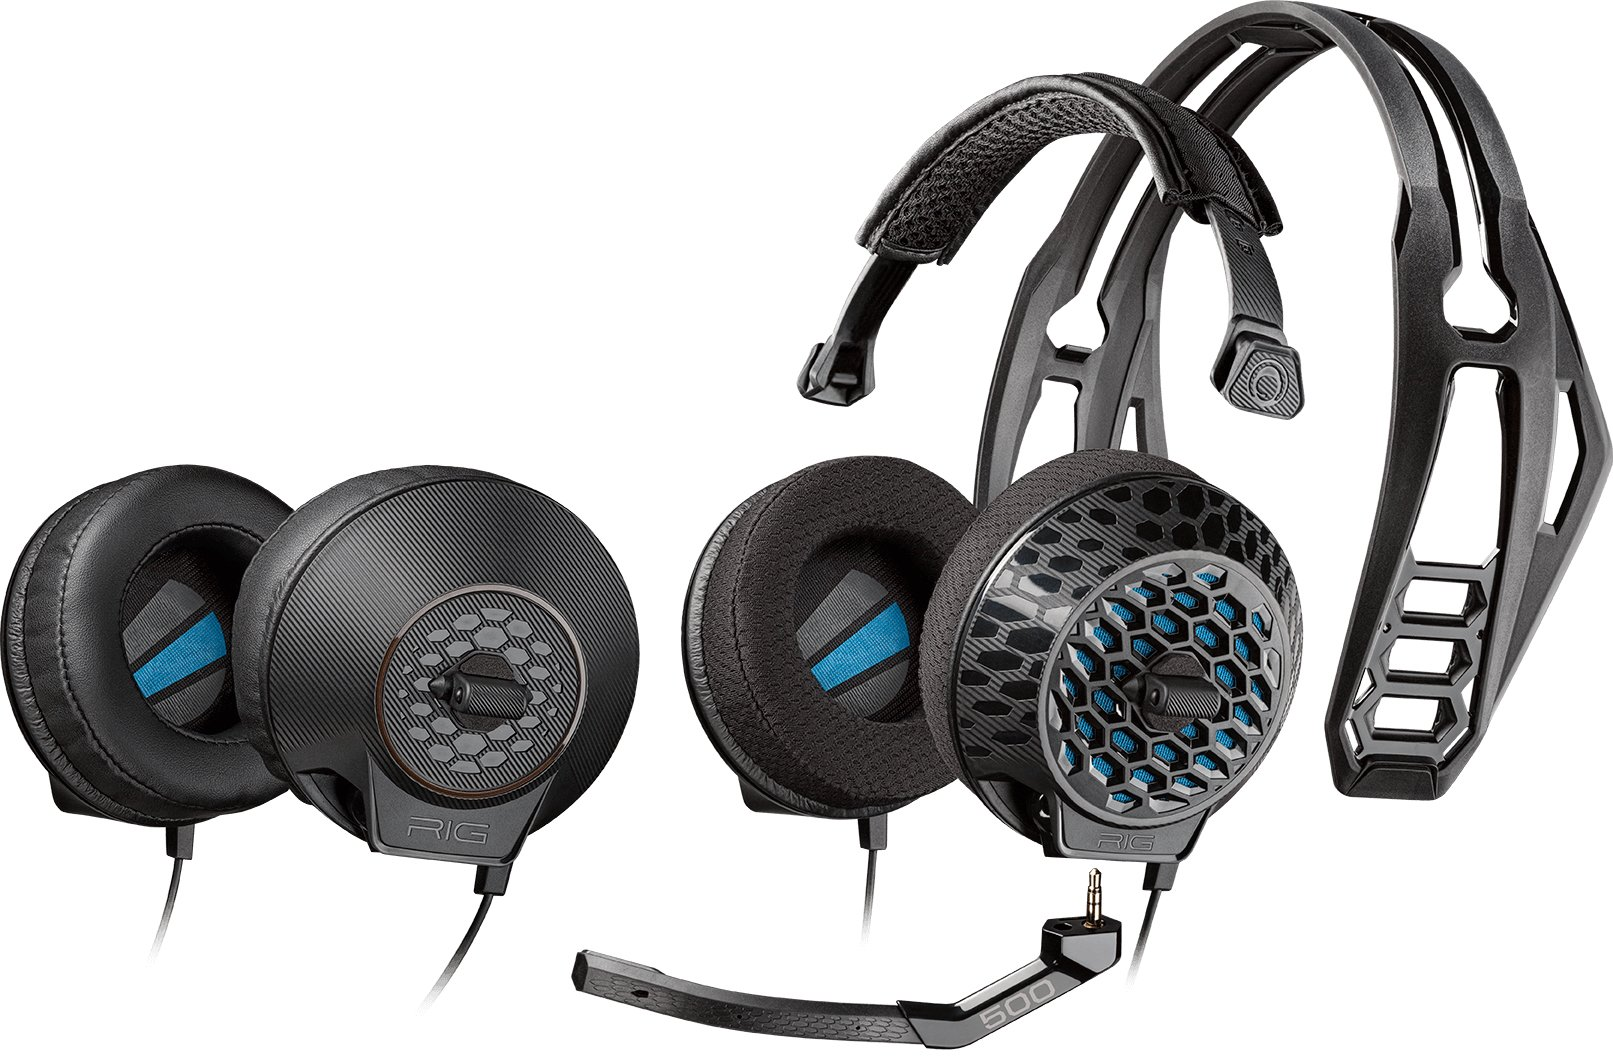 Plantronics RIG 500E Lightweight E-Sports Edition Gaming Headset with Surround Sound by Plantronics